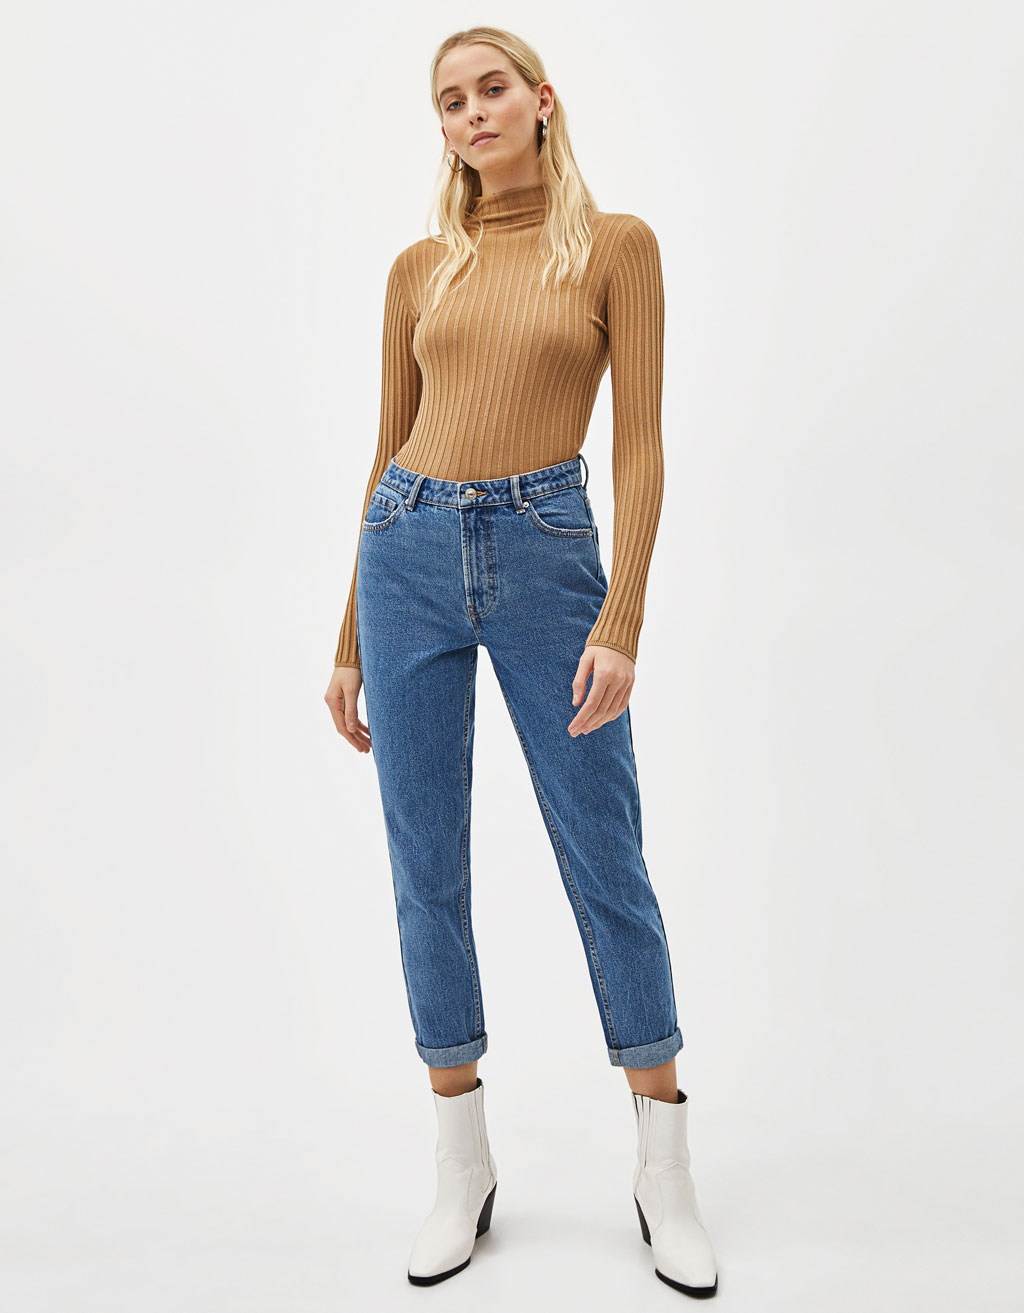 Denim Collection - COLLECTION - FEMME - Bershka France 3f4a5dbcb6c2